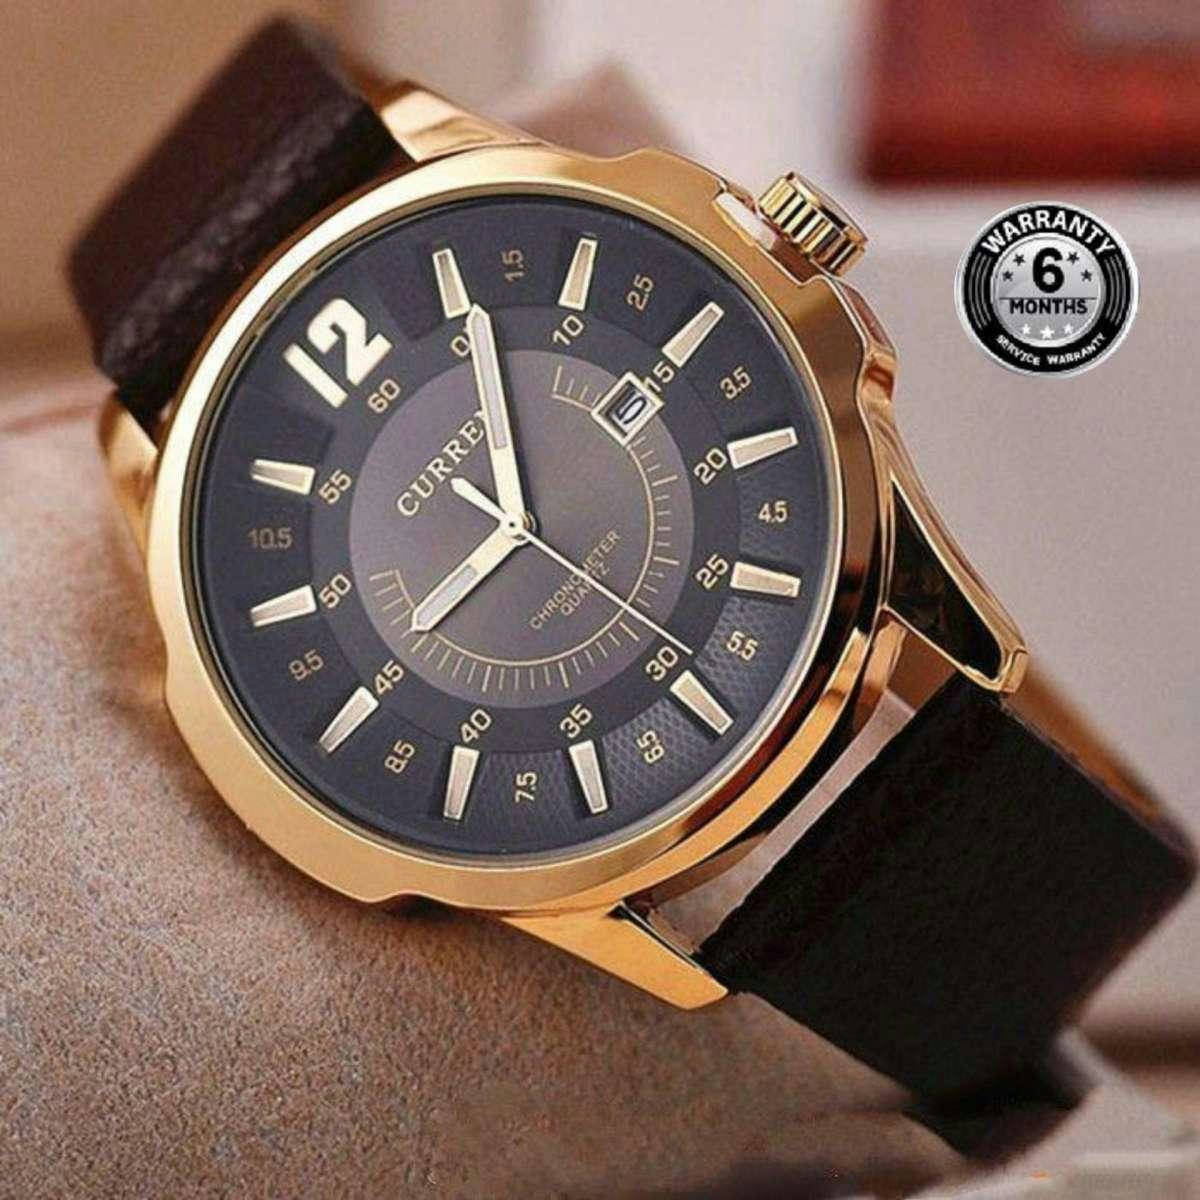 8123 Leather Analog Watch for Men - Coffee - Bponi